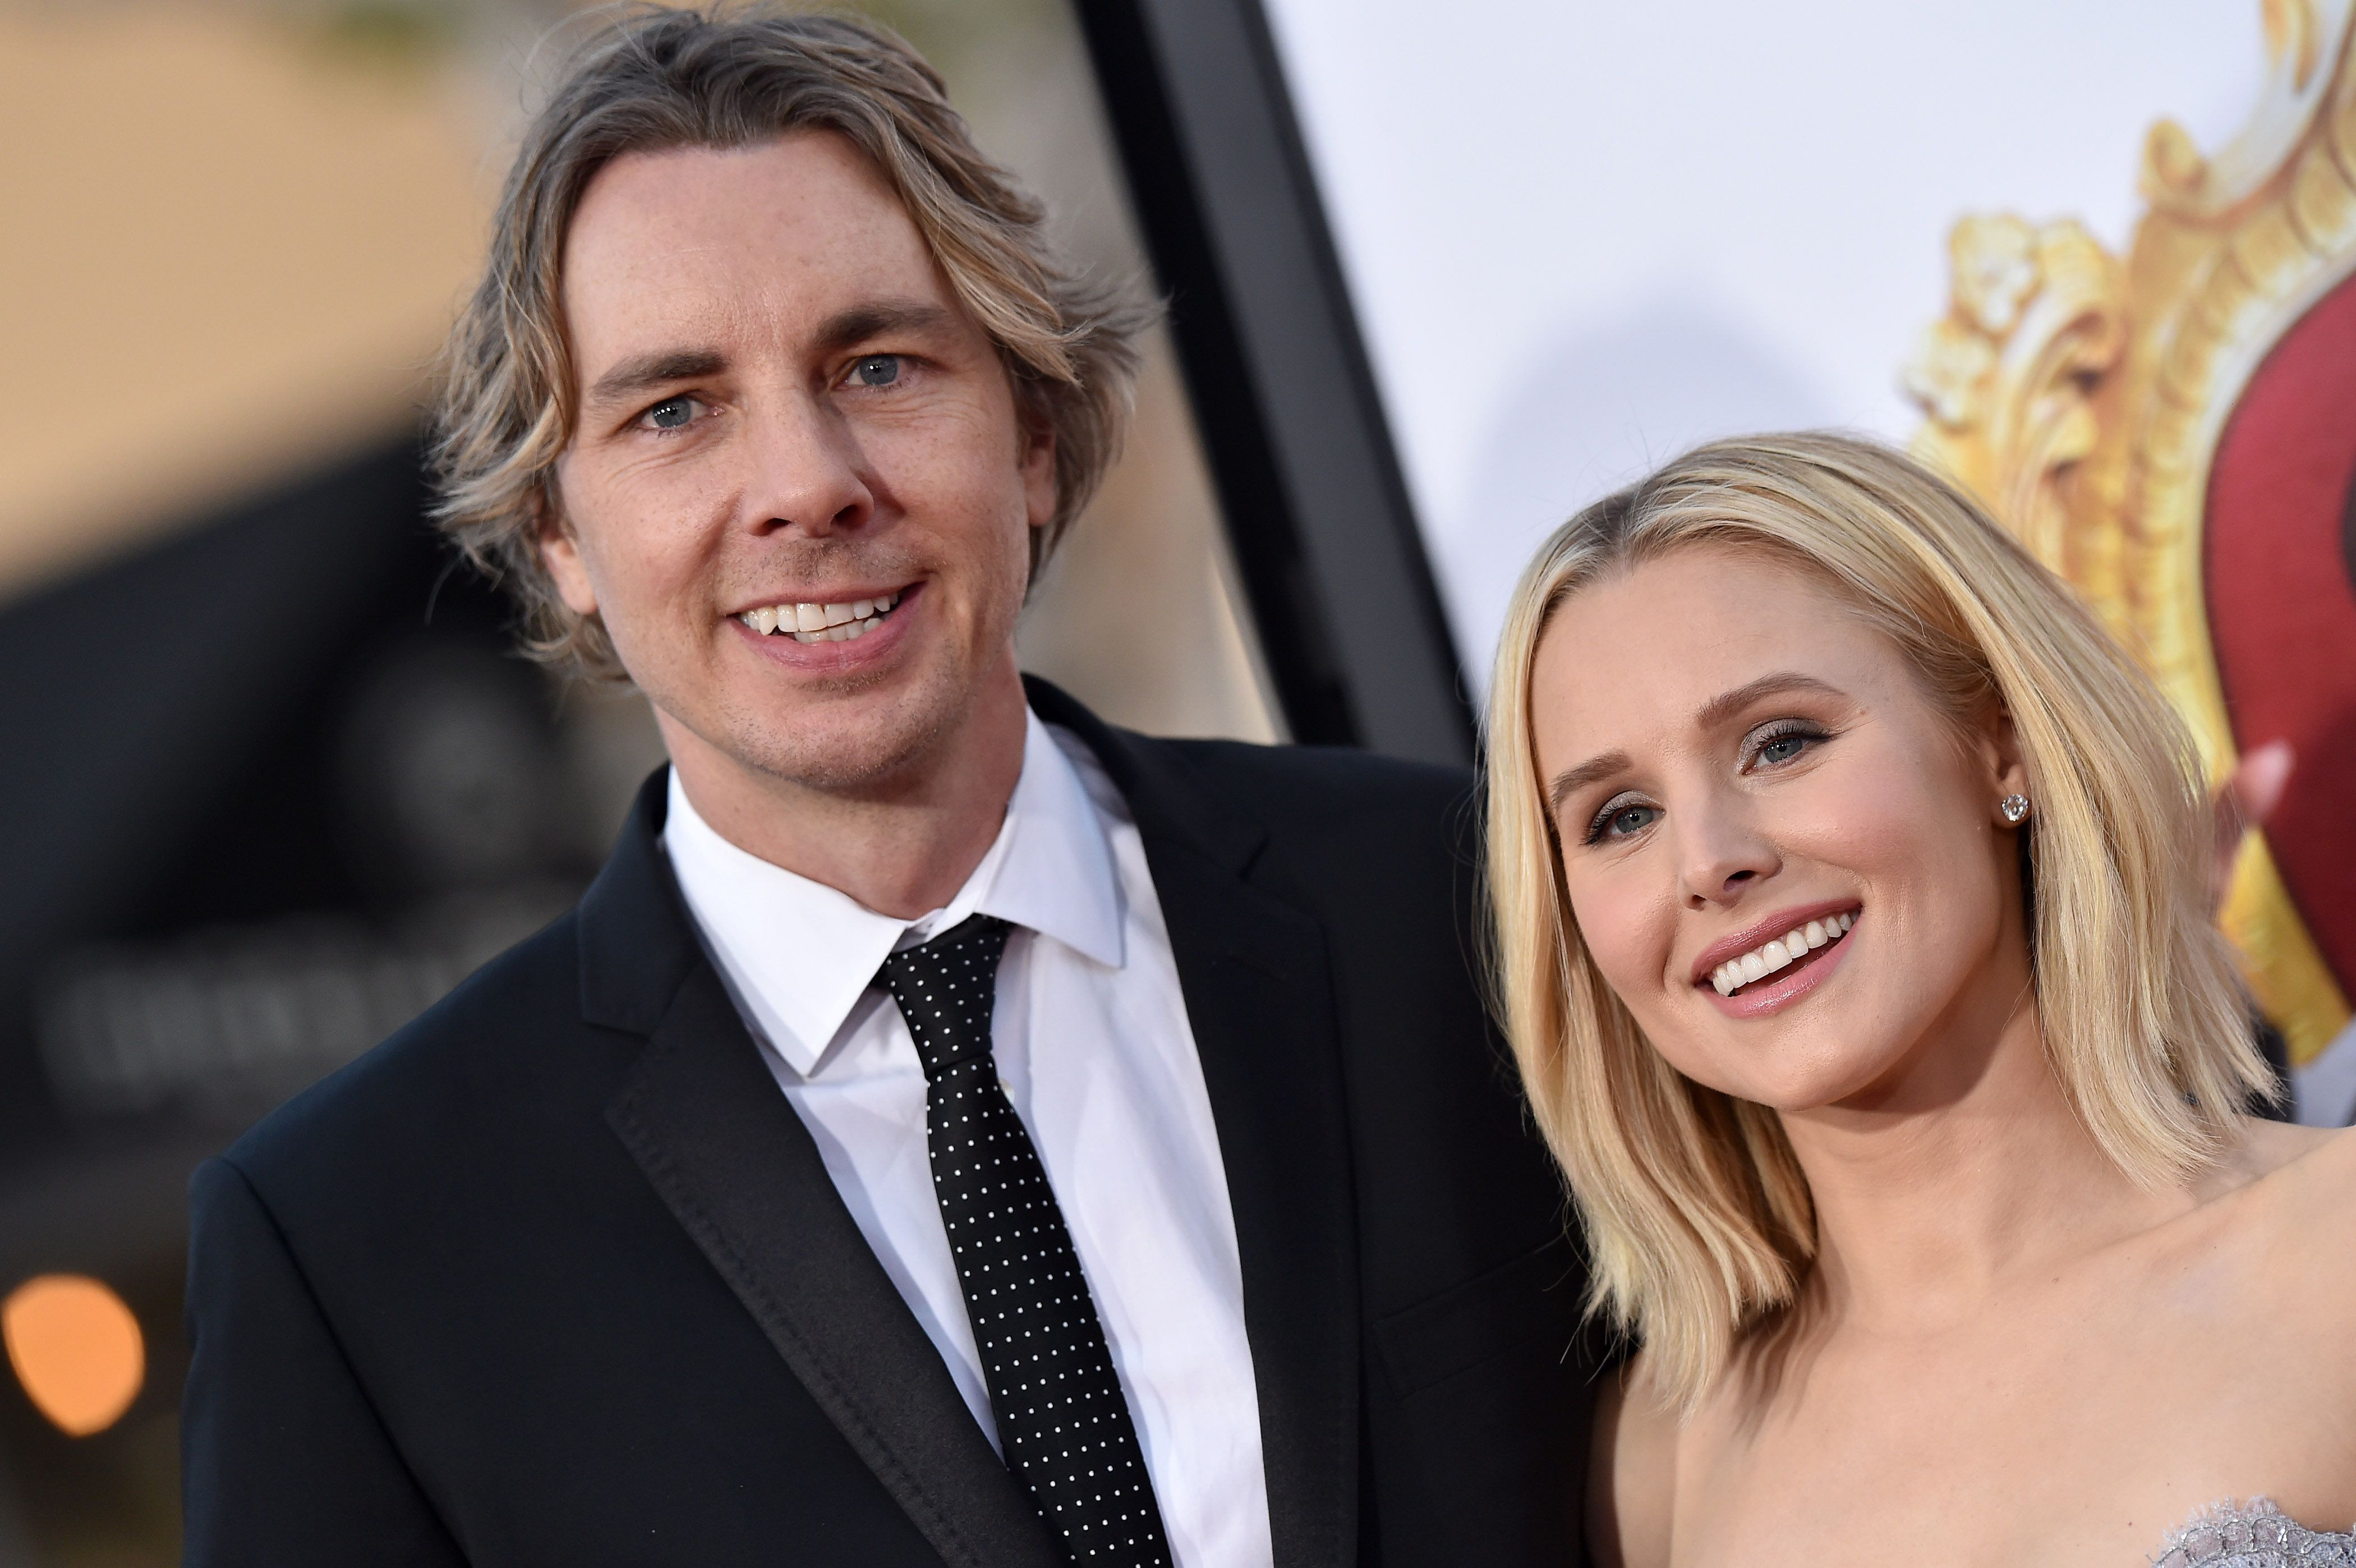 "It's not just a shared quirky sense of humor that keeps <a href=""http://www.huffingtonpost.com/topic/dax-shepard"">Dax Shepard"